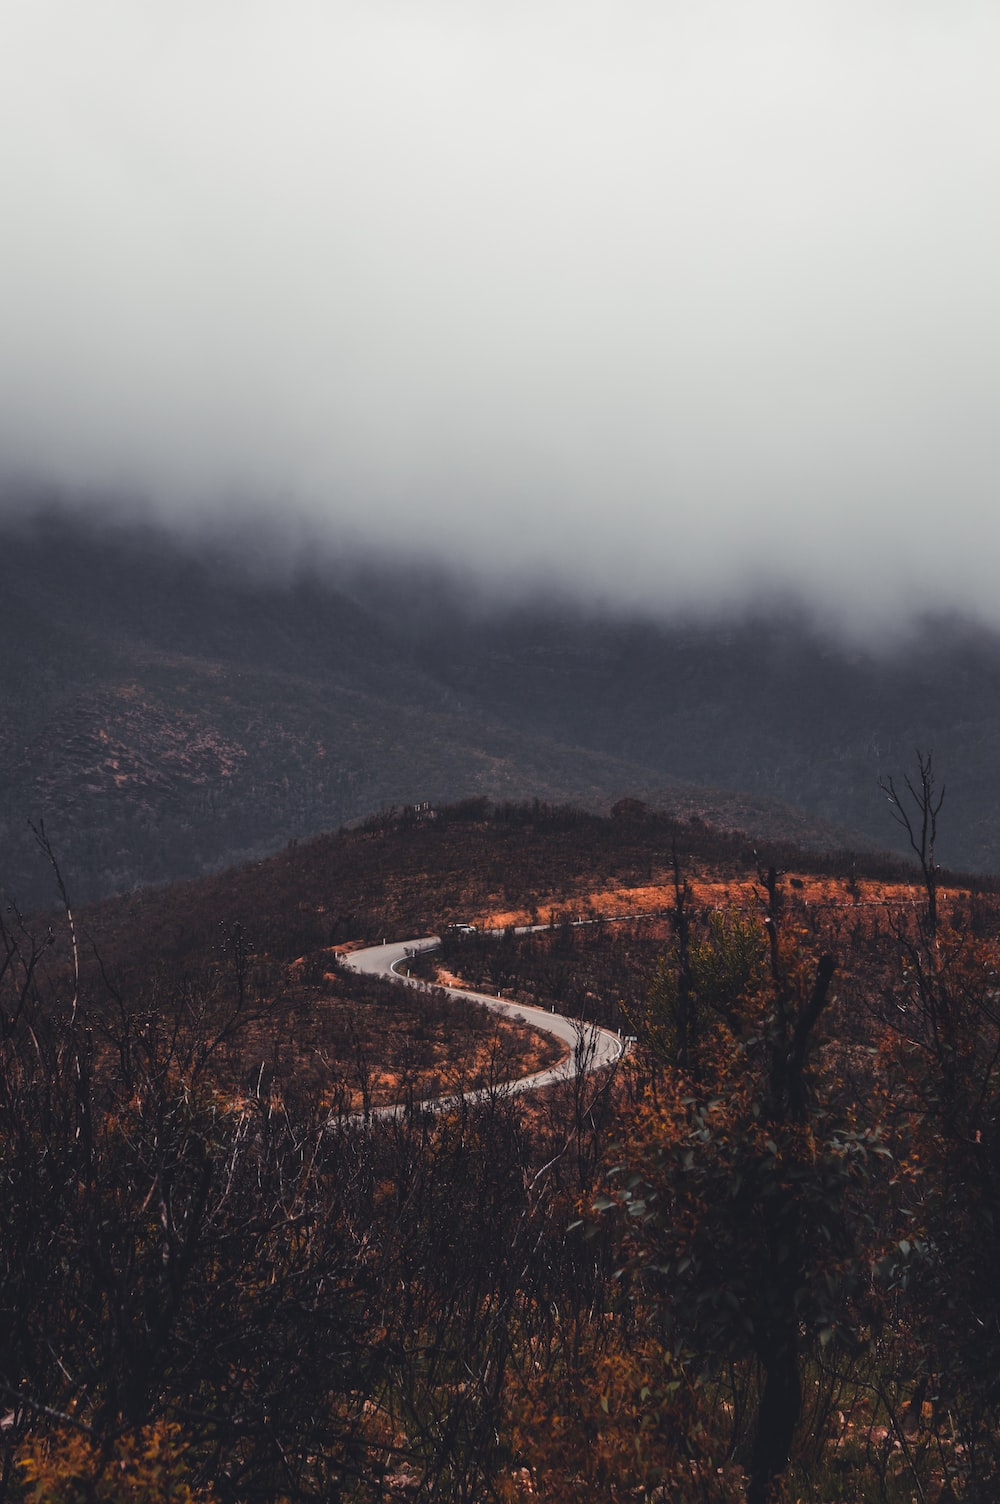 brown trees on mountain during foggy day